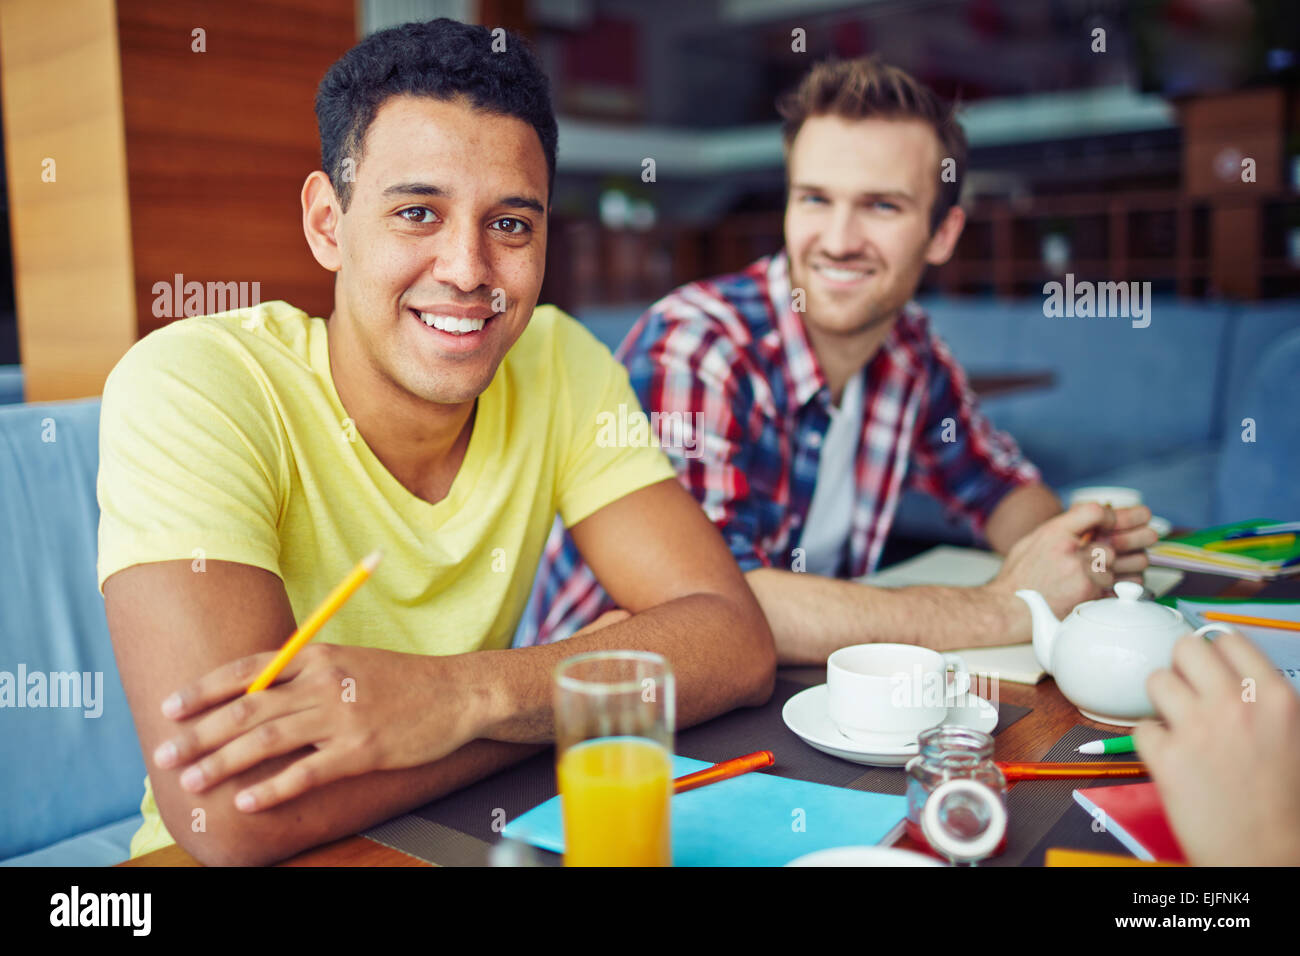 Two boys at breakfast sitting and looking at camera Stock Photo